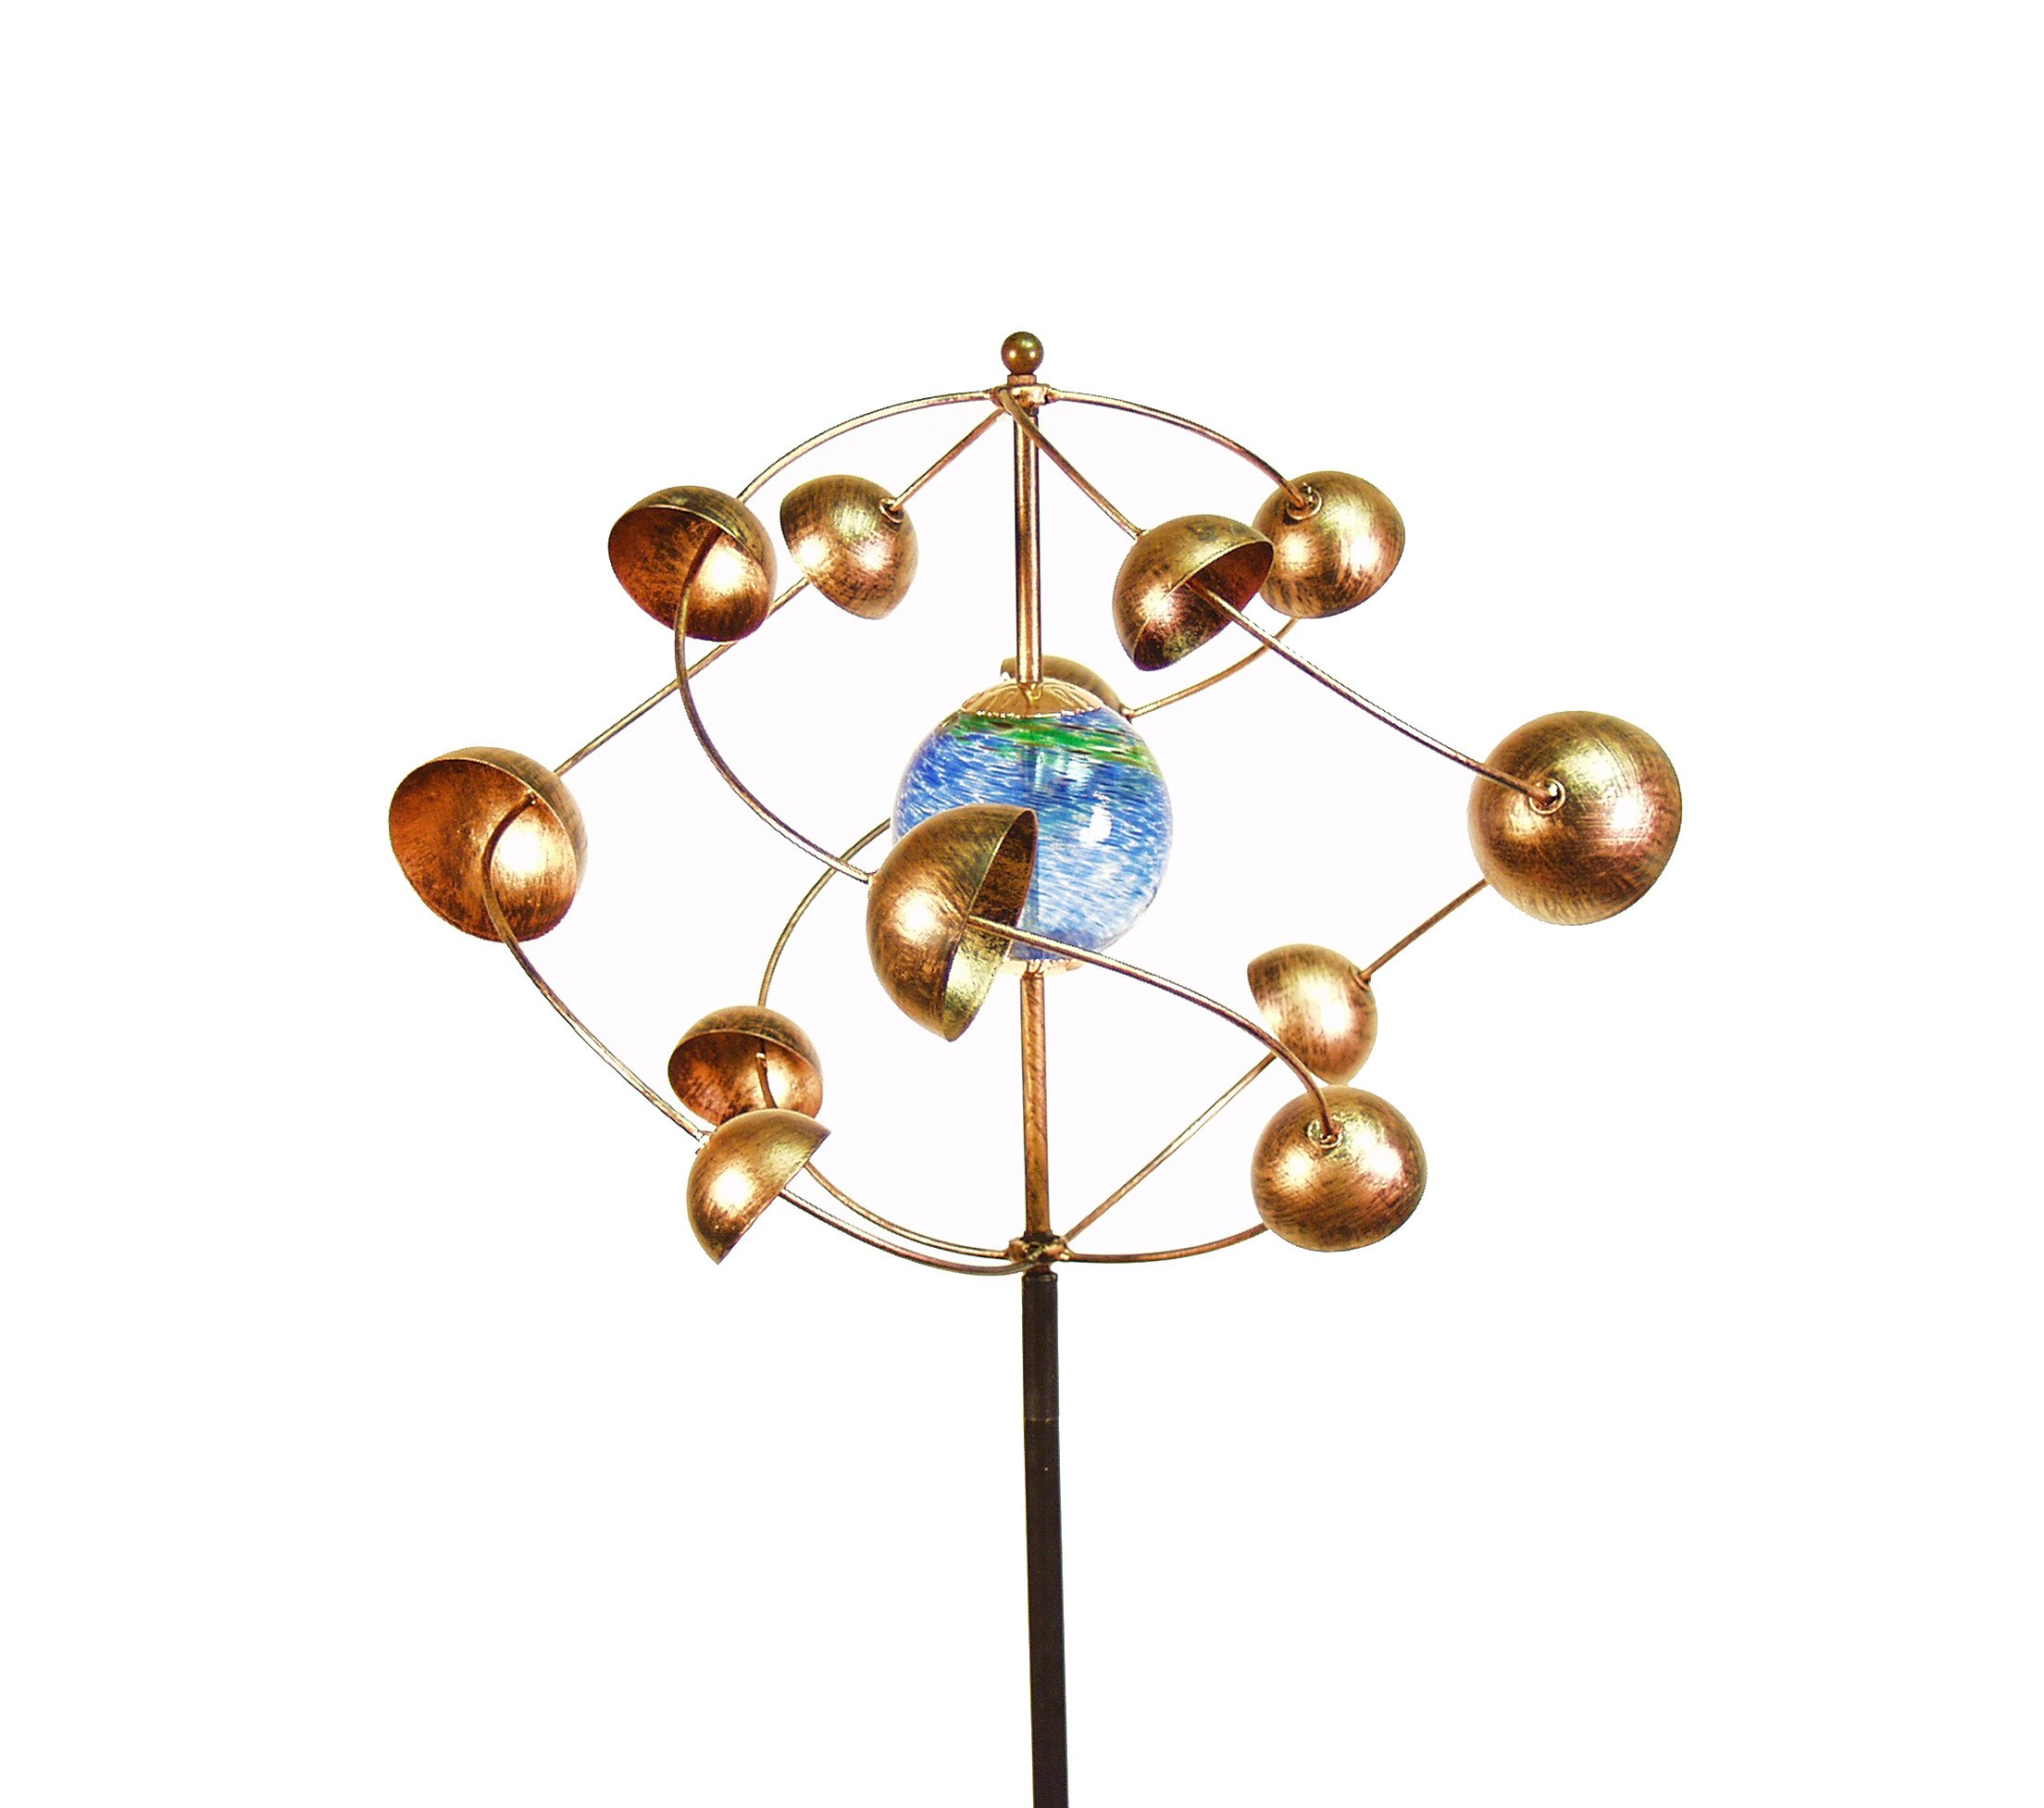 Echo Valley 4394 Illuminarie Cosmic Kinetic Spinner Stake, 17.75 by 17.5 by 58-Inch